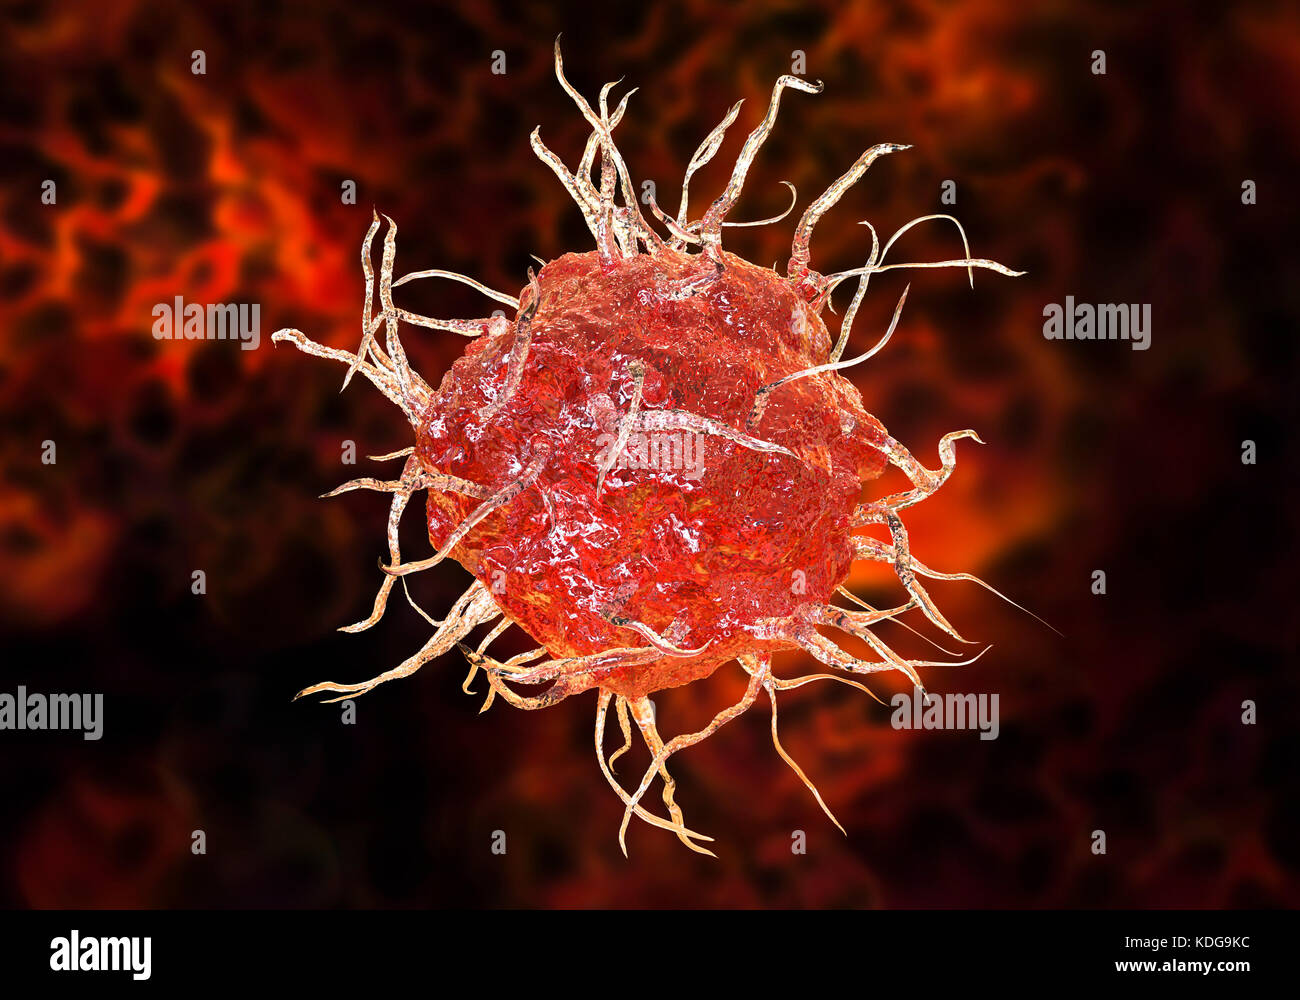 Dendritic cell, computer illustration. A dendritic cell is a type of white blood cell. It is an antigen- presenting - Stock Image